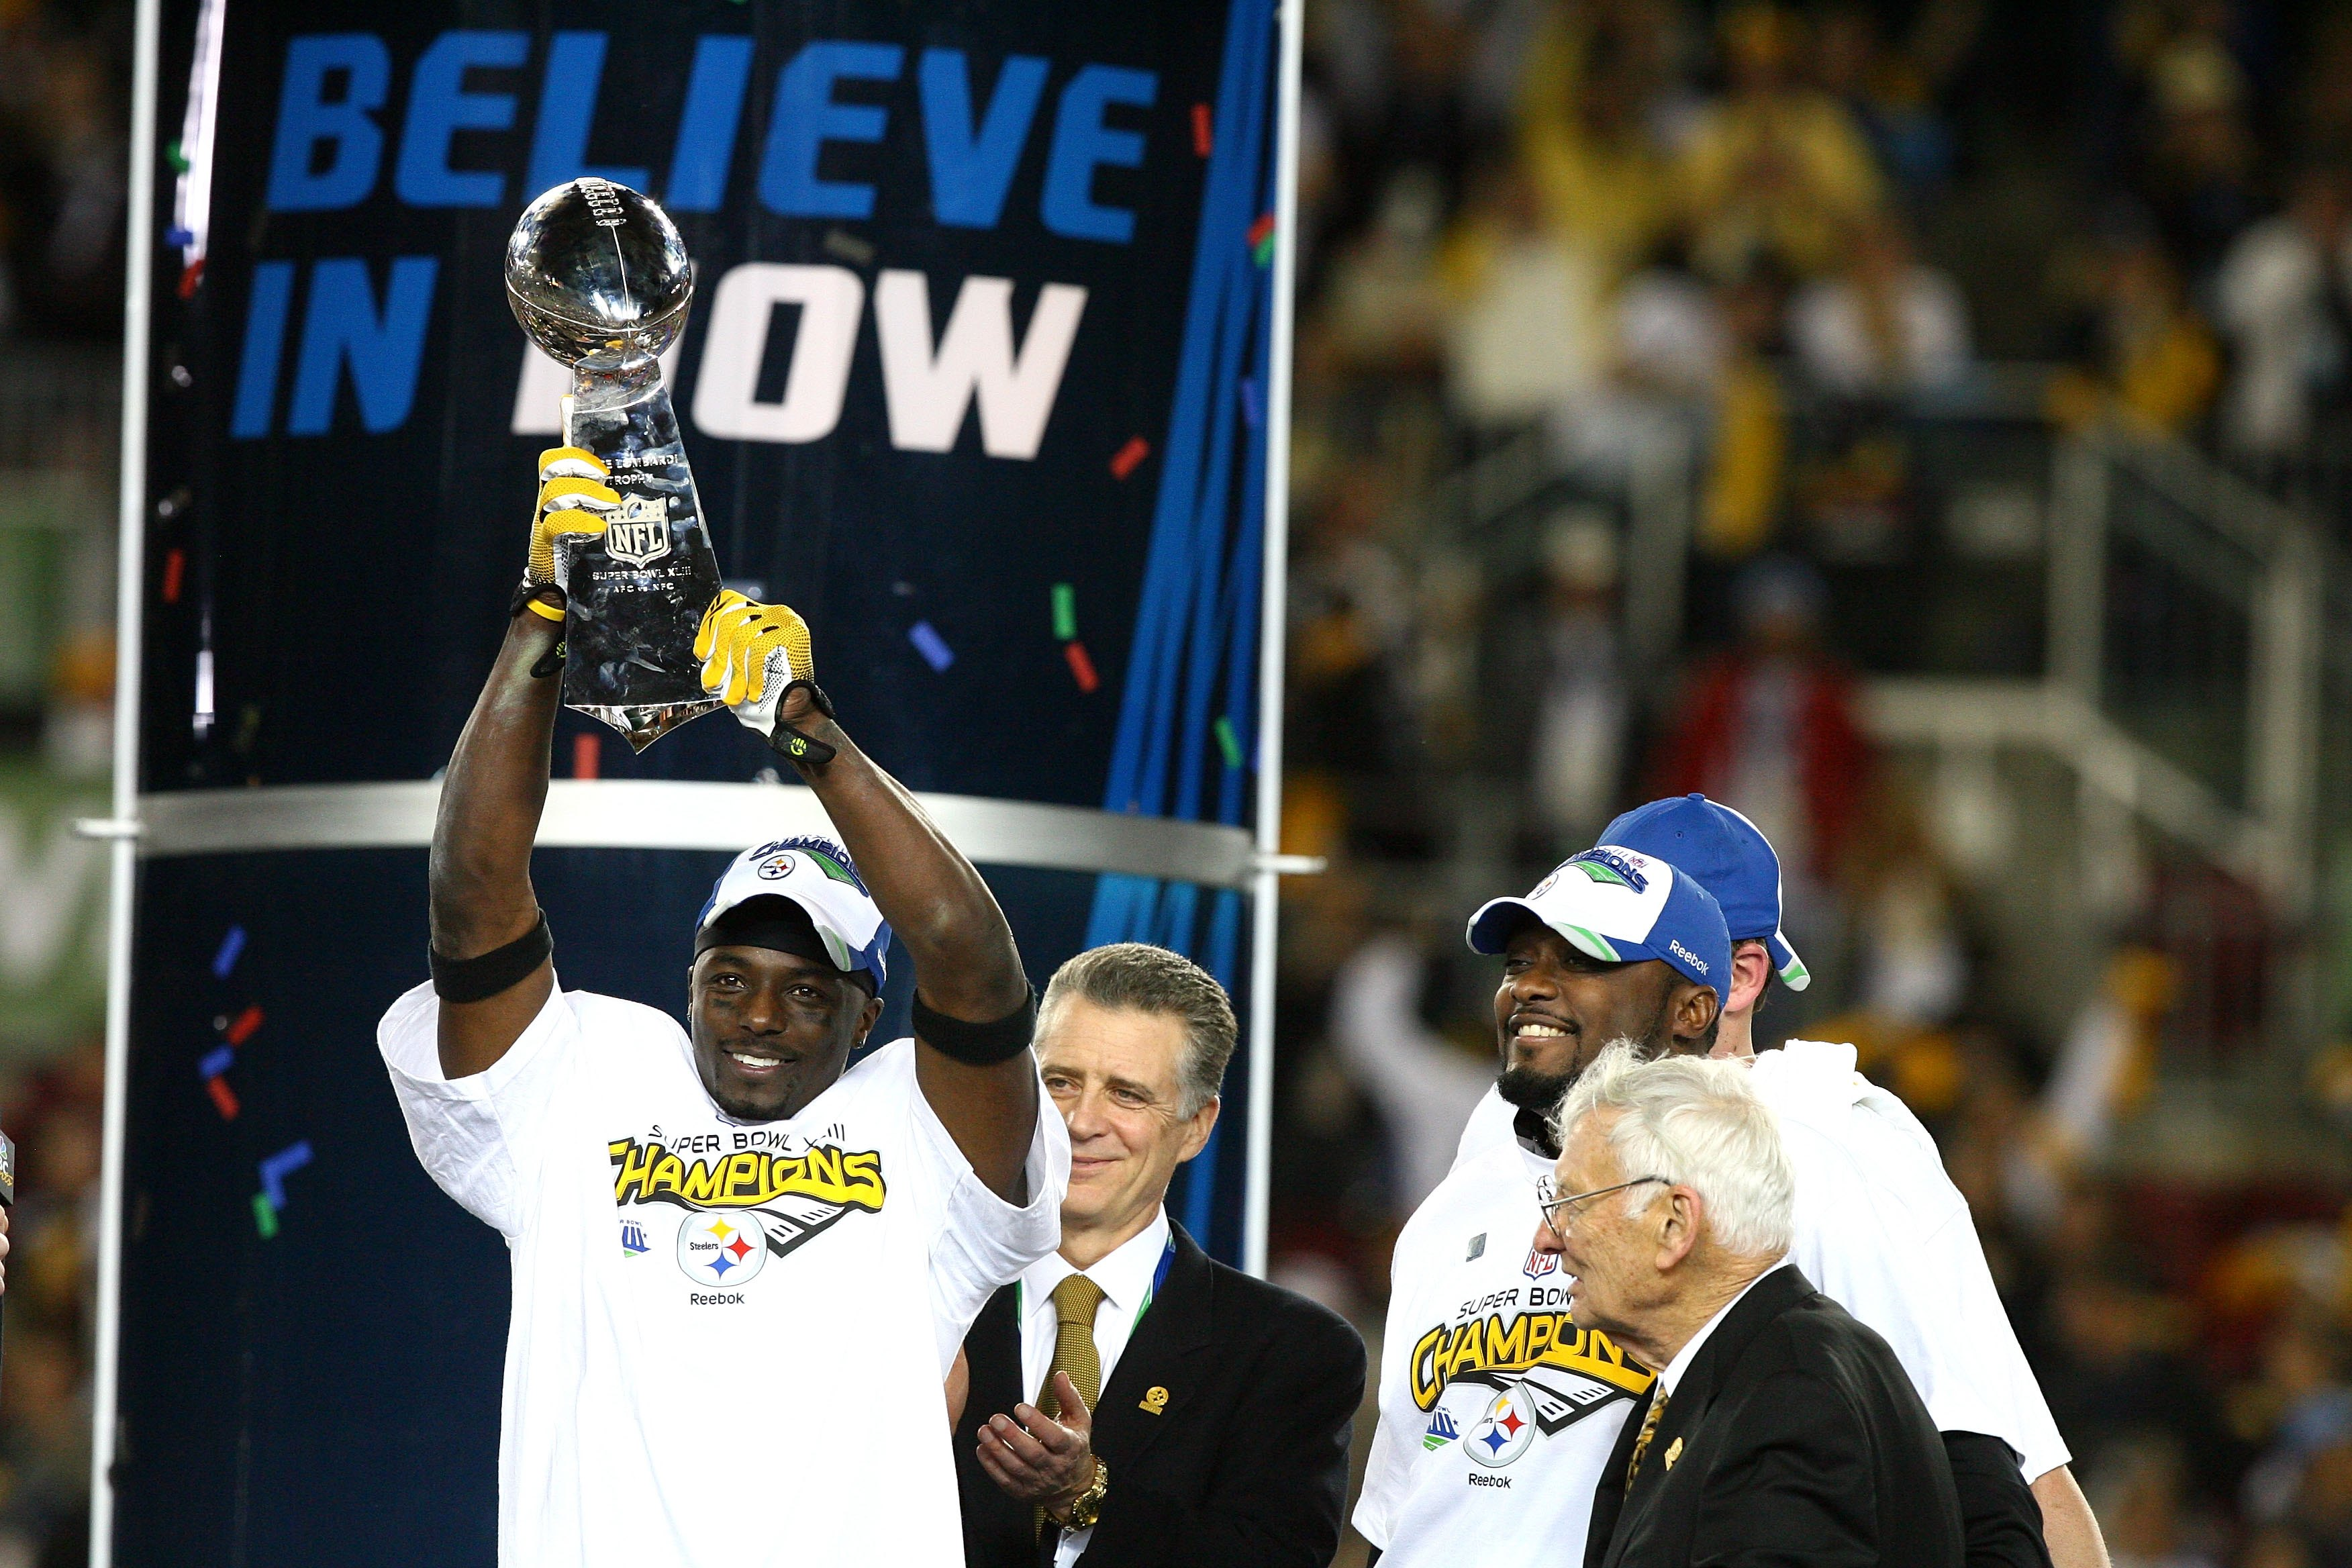 TAMPA, FL - FEBRUARY 01:  Santonio Holmes #10 of of the Pittsburgh Steelers celebrates with the Vince Lombardi Trophy as team owner Dan Rooney and head coach Mike Tomlin looks on after the Steelers won 27-23 against the Arizona Cardinals during Super Bowl